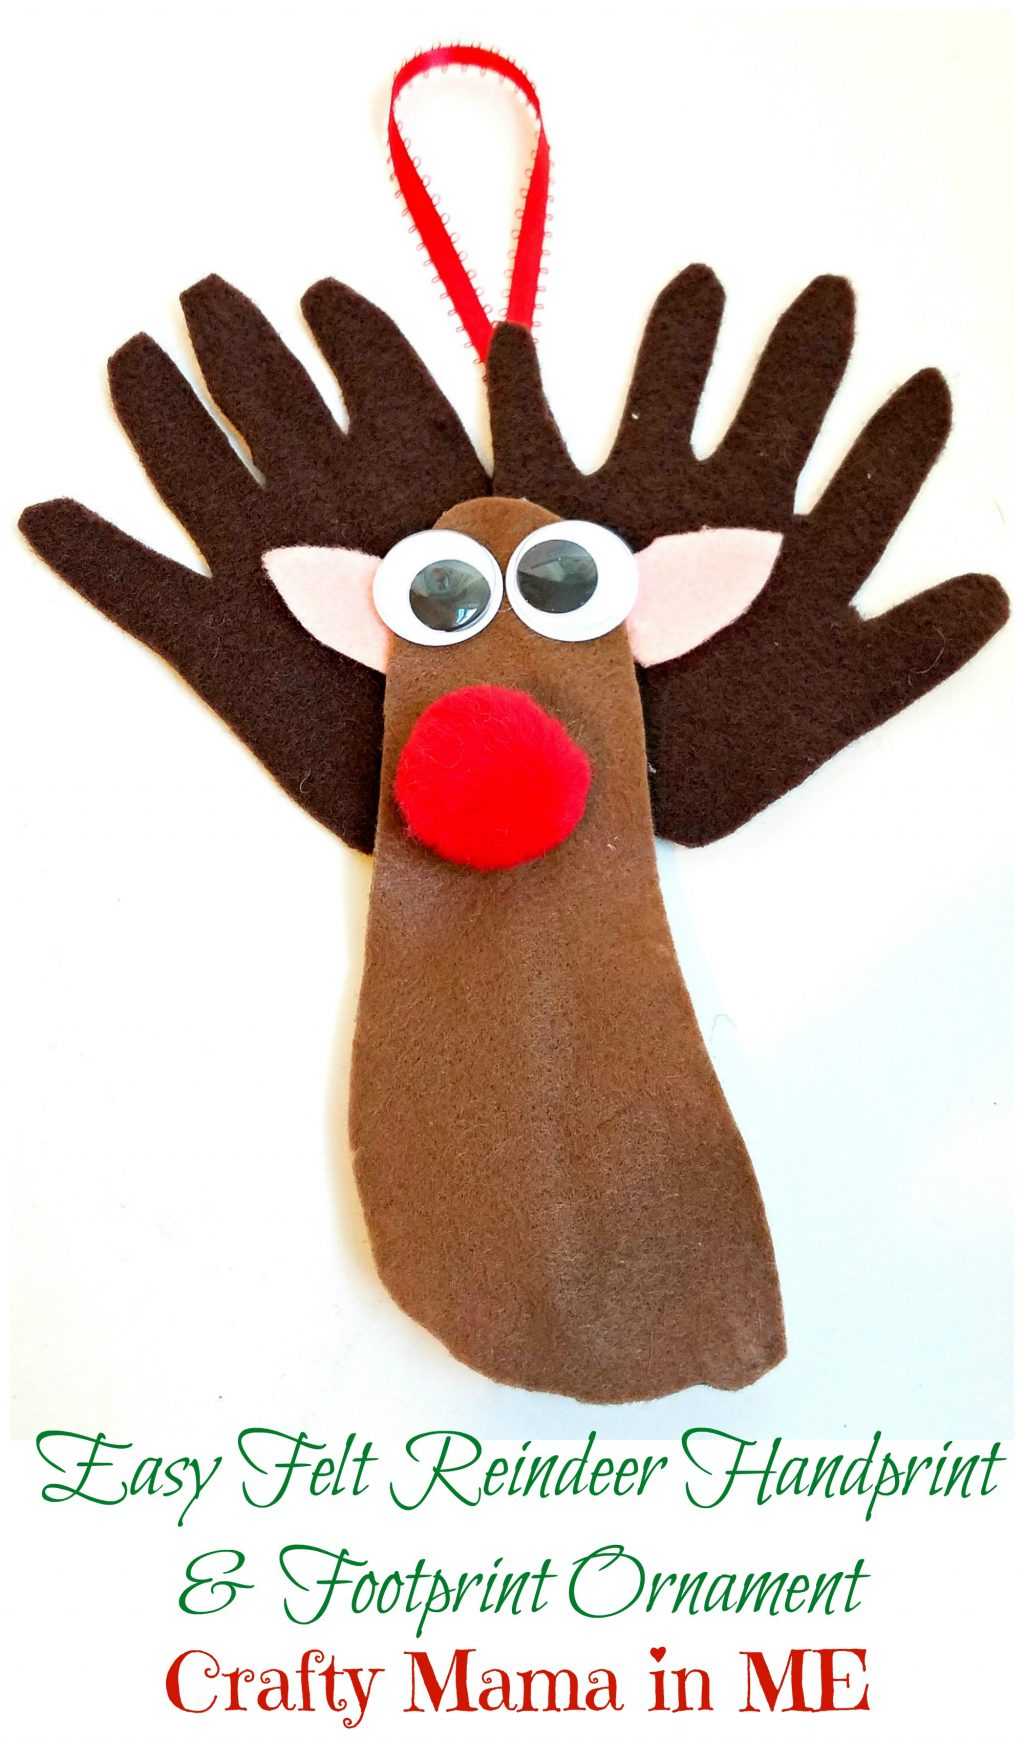 Easy felt reindeer handprint and footprint ornament for Reindeer project